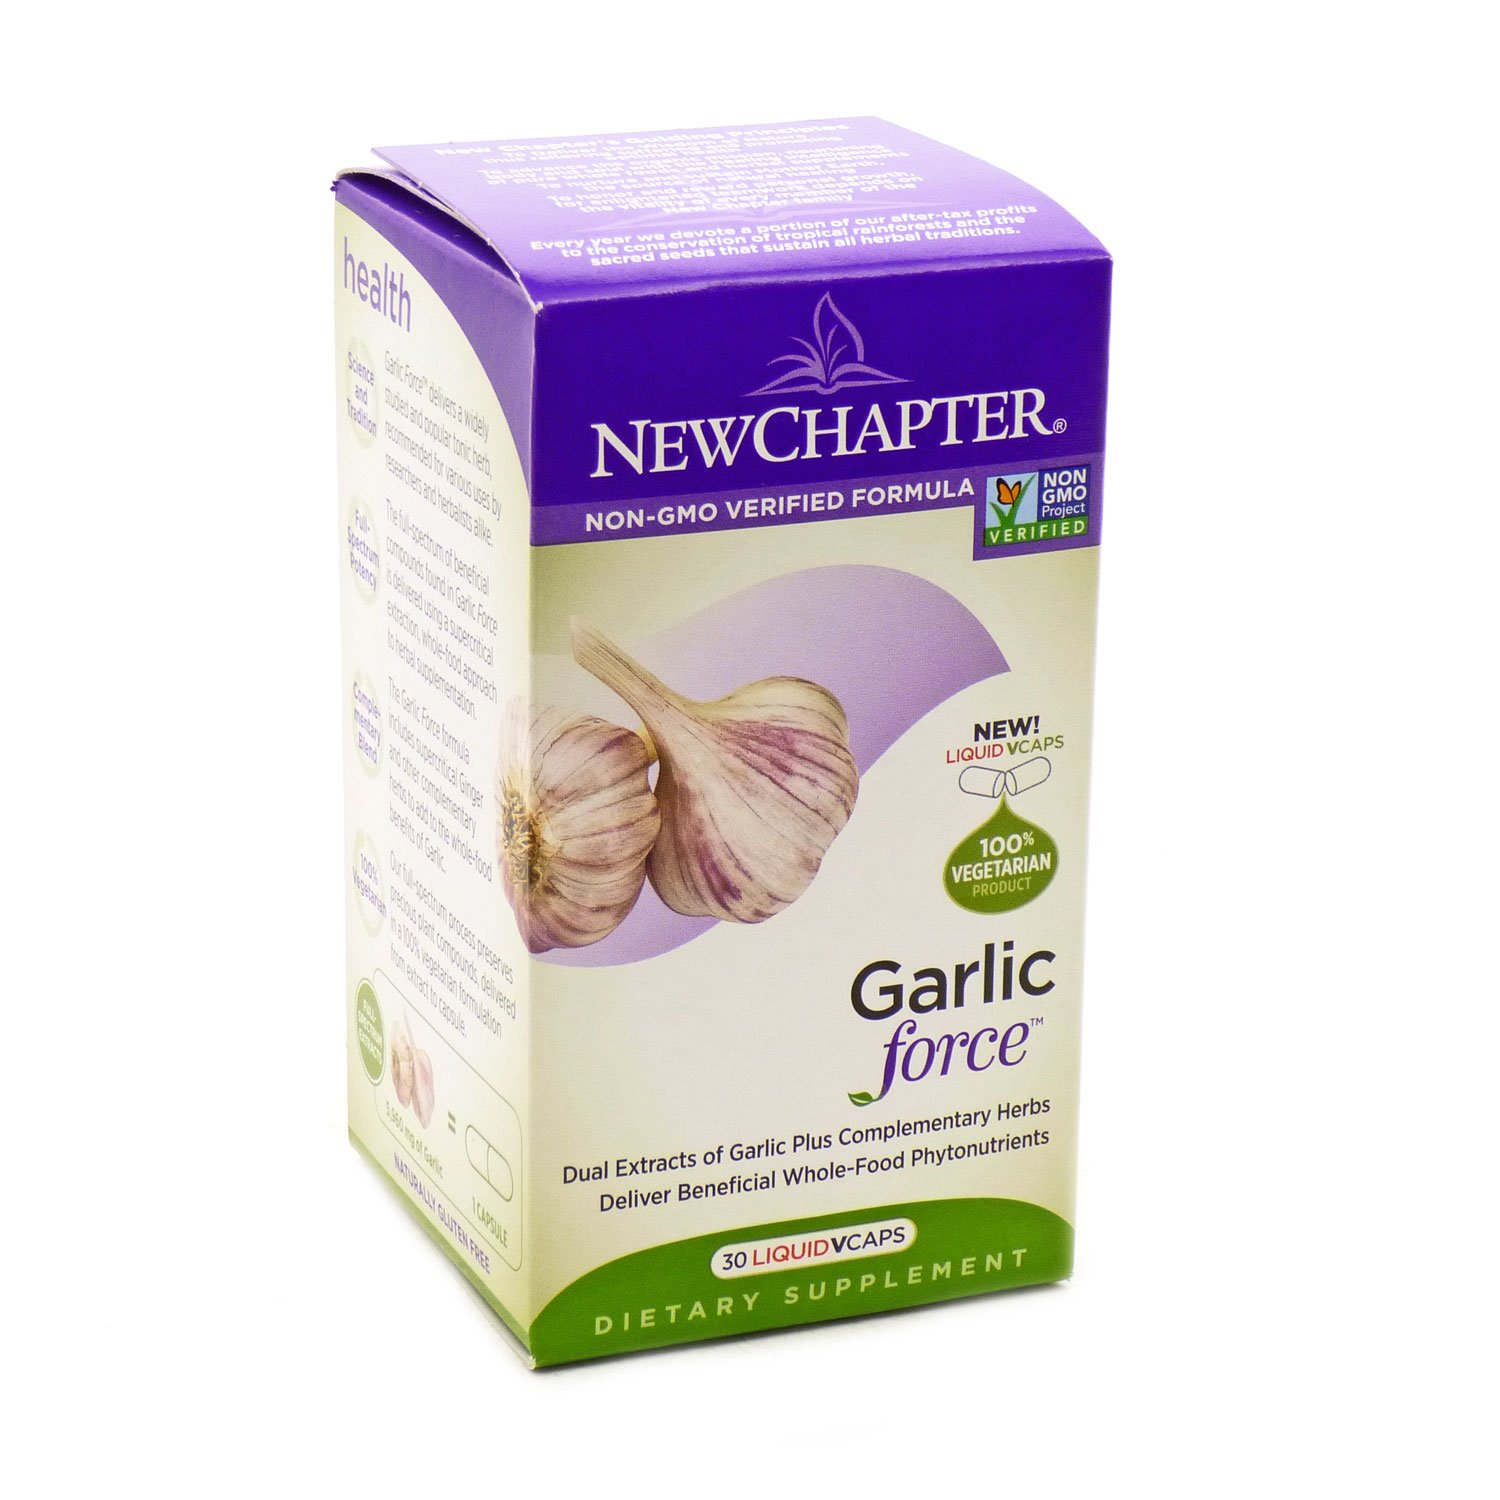 New Chapter Garlic Force, 30 Count (3 pack)